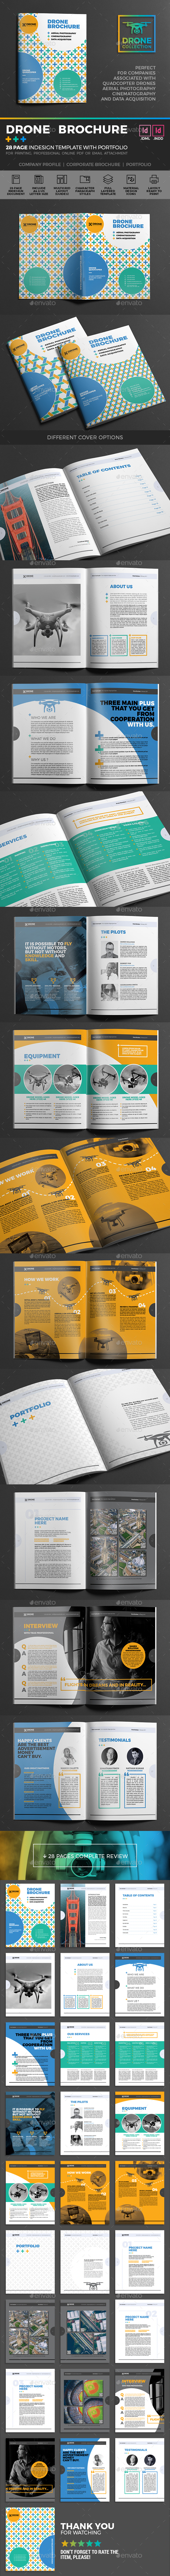 Drone Brochure - 28 Page InDesign Template - Brochures Print Templates